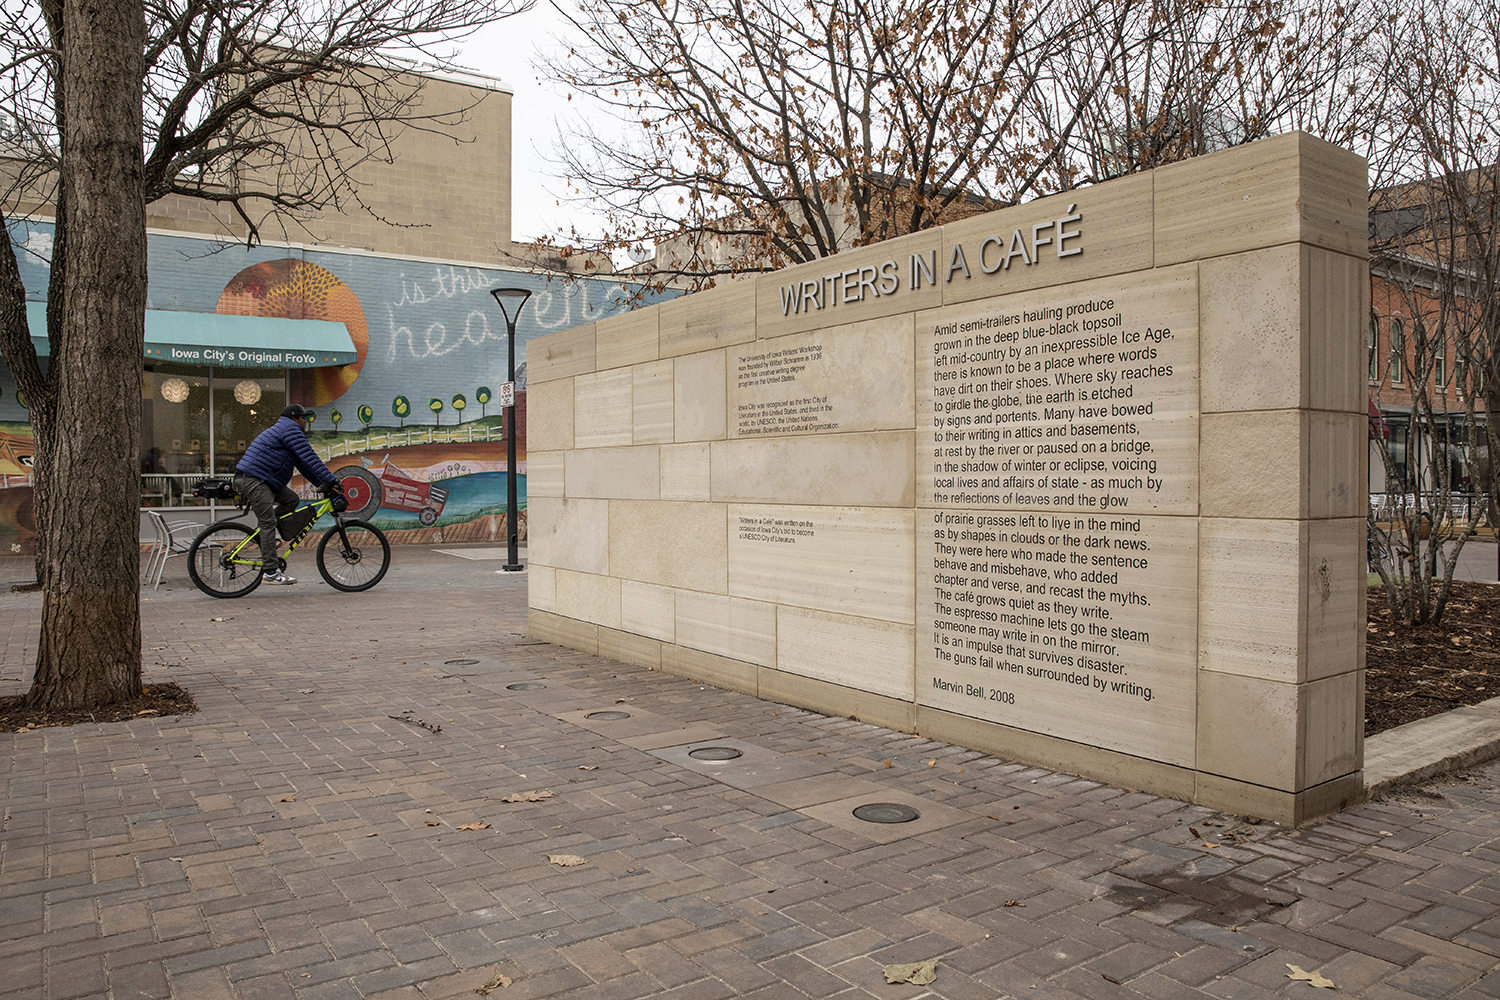 An installed art piece displays a poem by artist Marvin Bell on December 8, 2019 in the Iowa City Pedestrian Mall. Iowa City was the first in the United States to be recognized as a